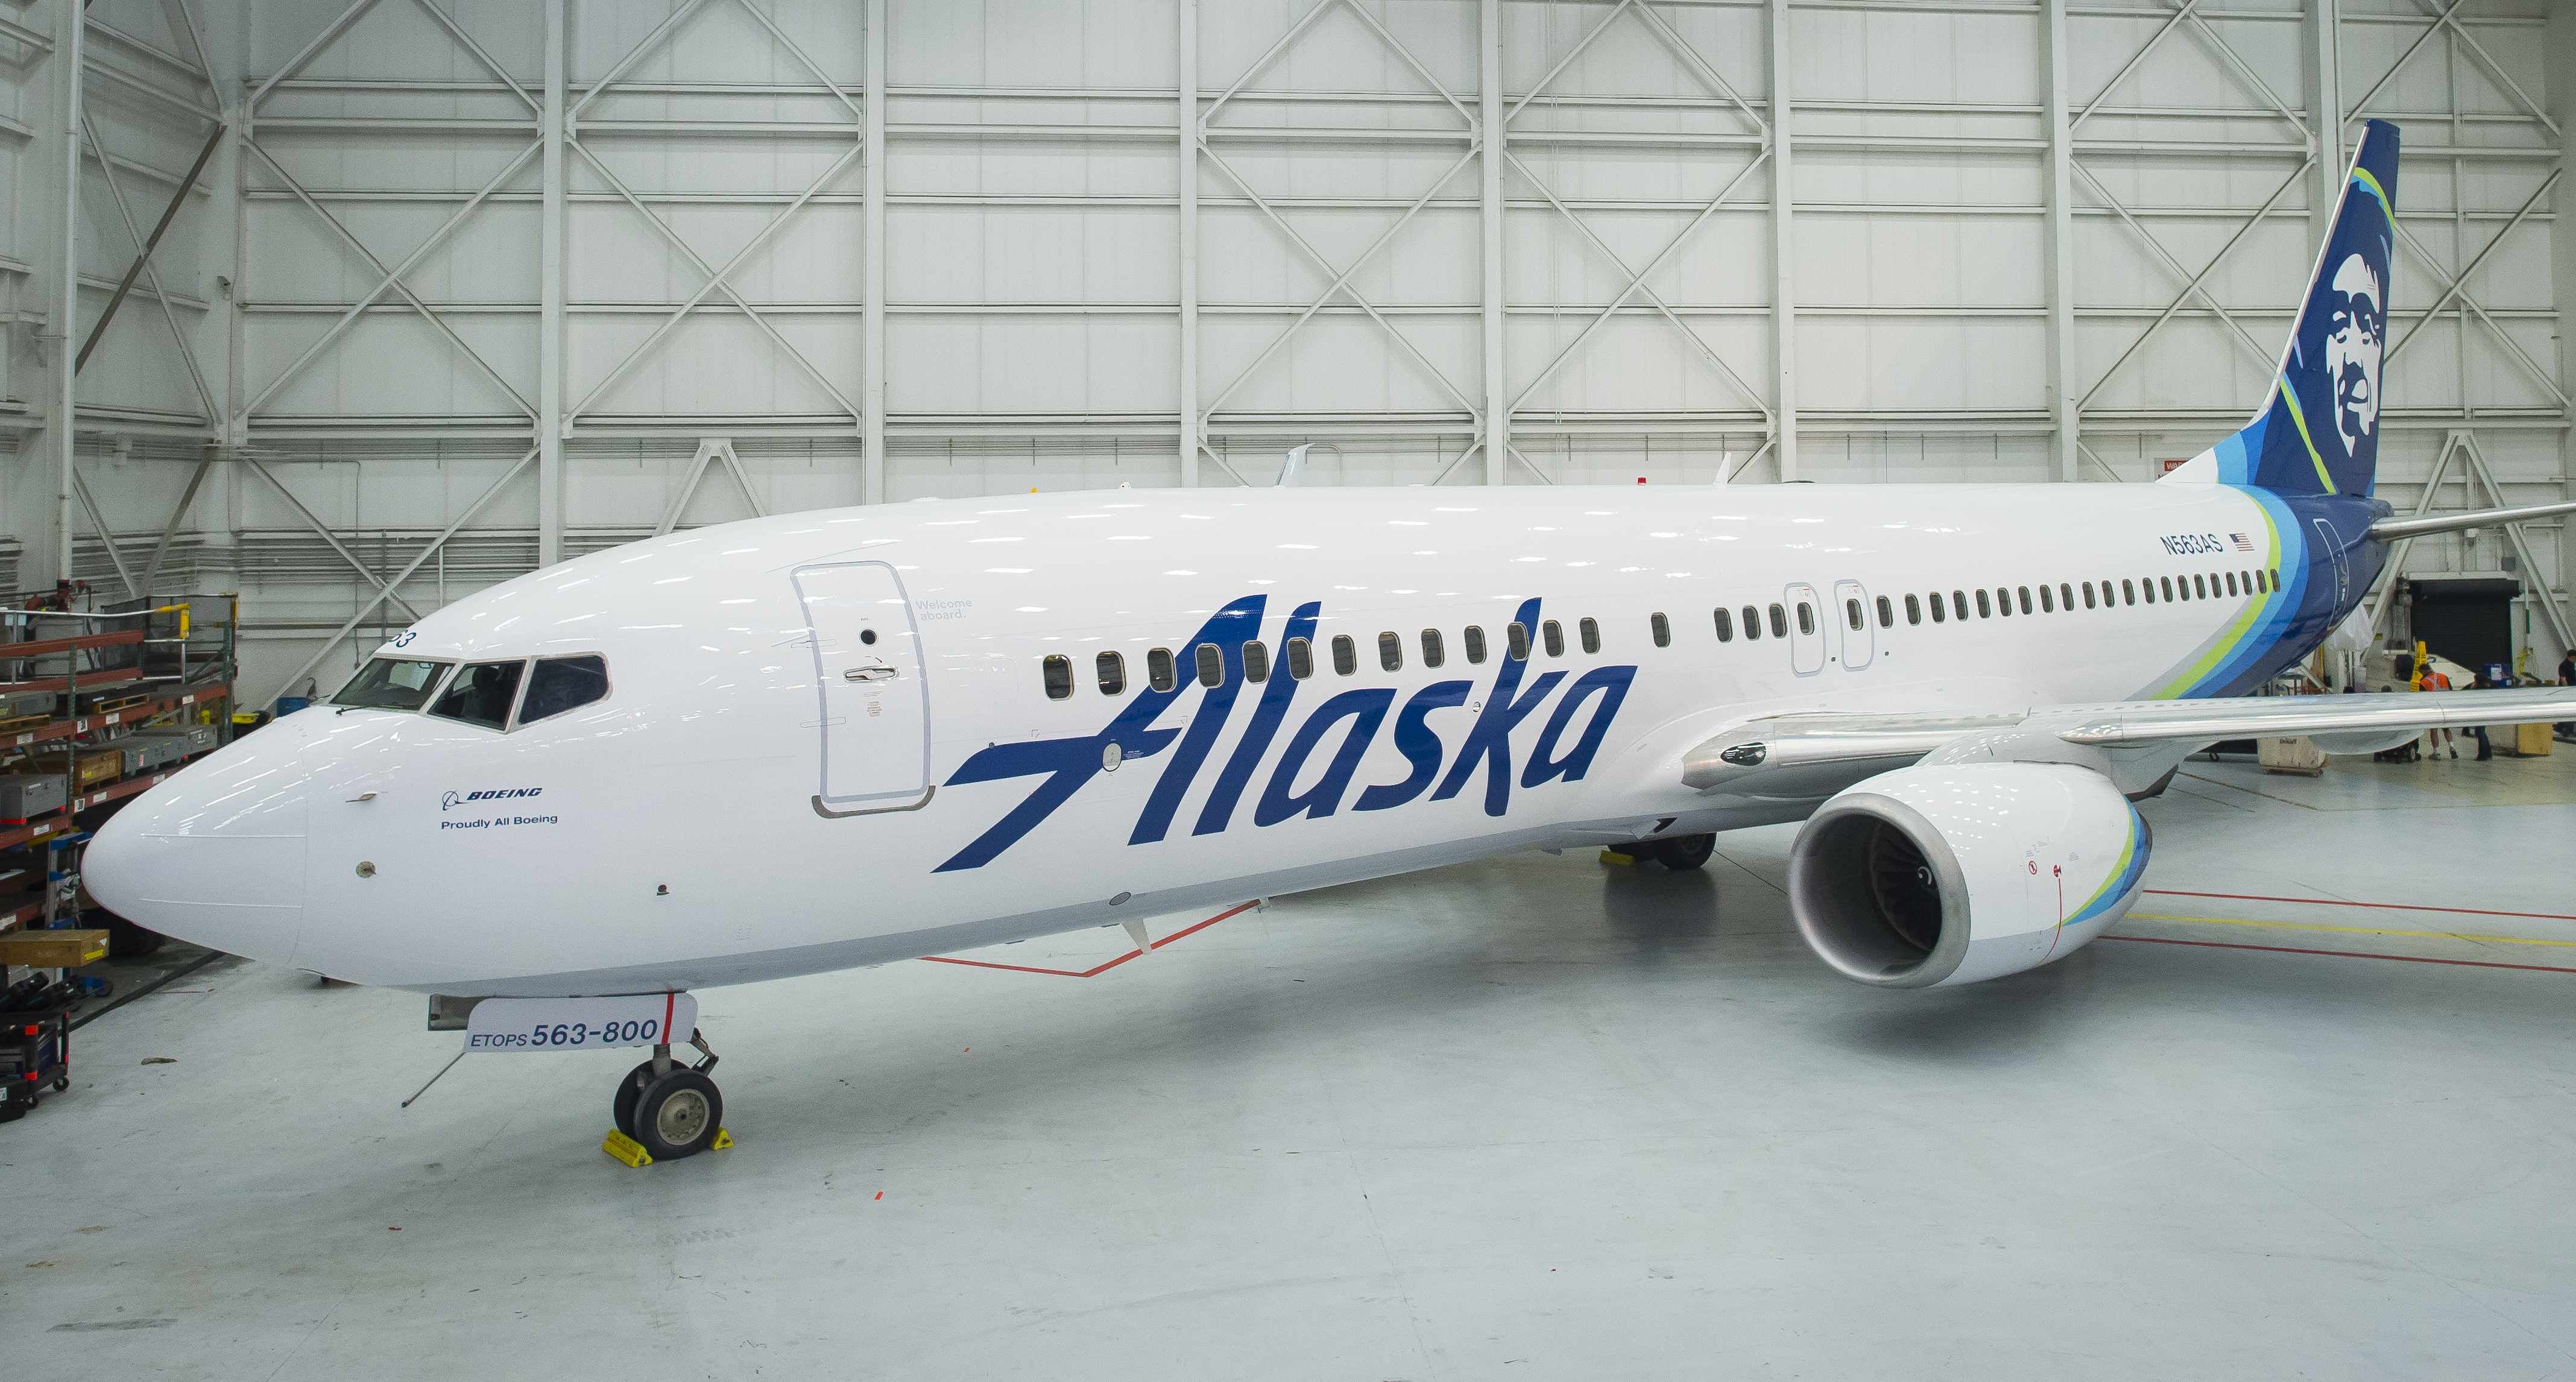 Your Chance To Win Prizes And Score Discounts With Alaska Airlines